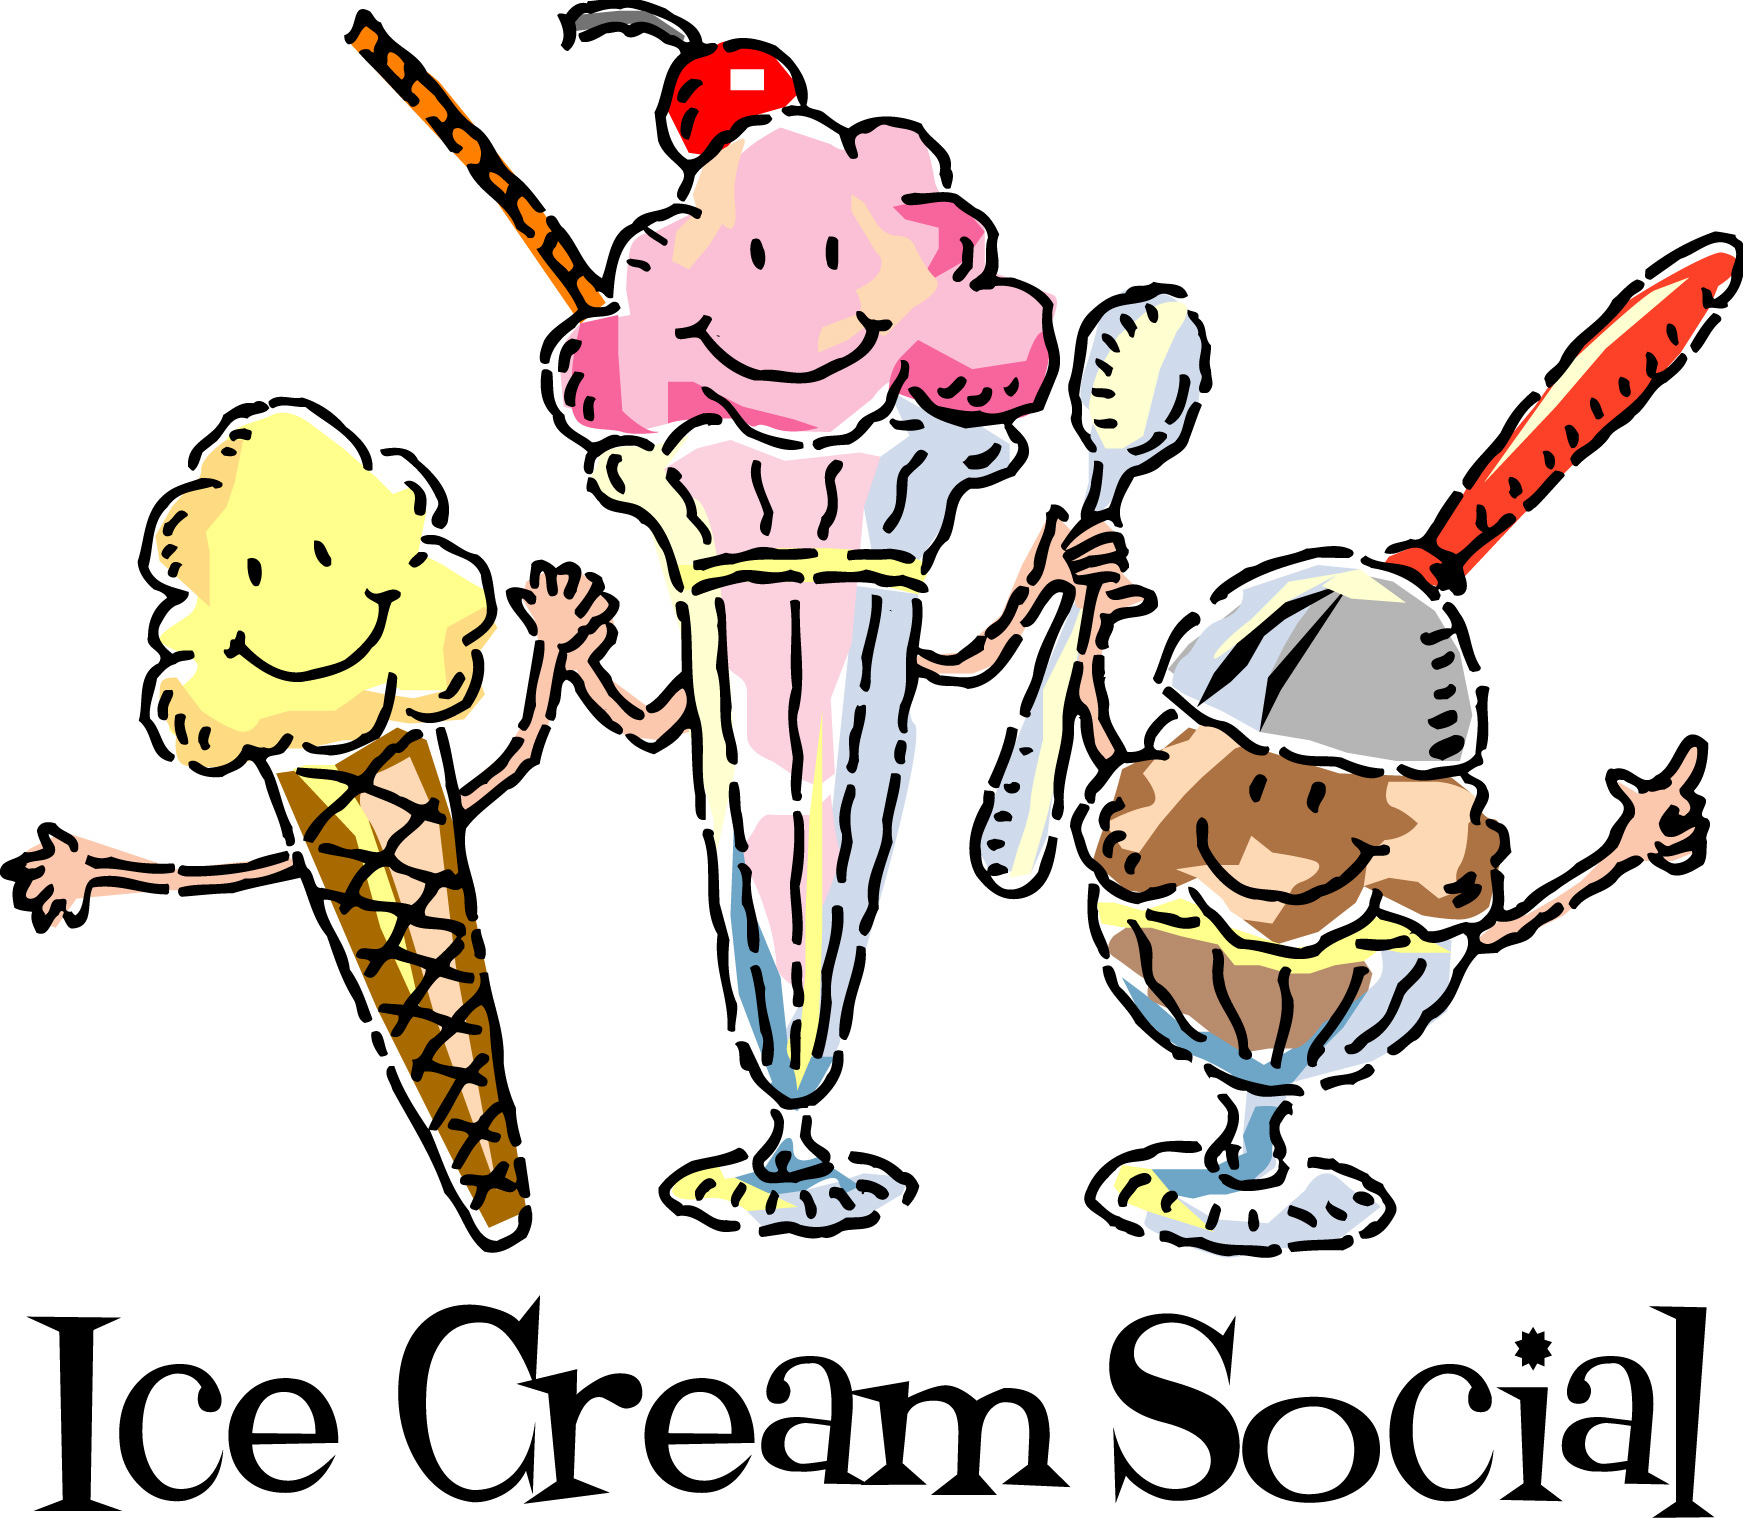 Drawn ice cream ALI Event Cream Calendar Social